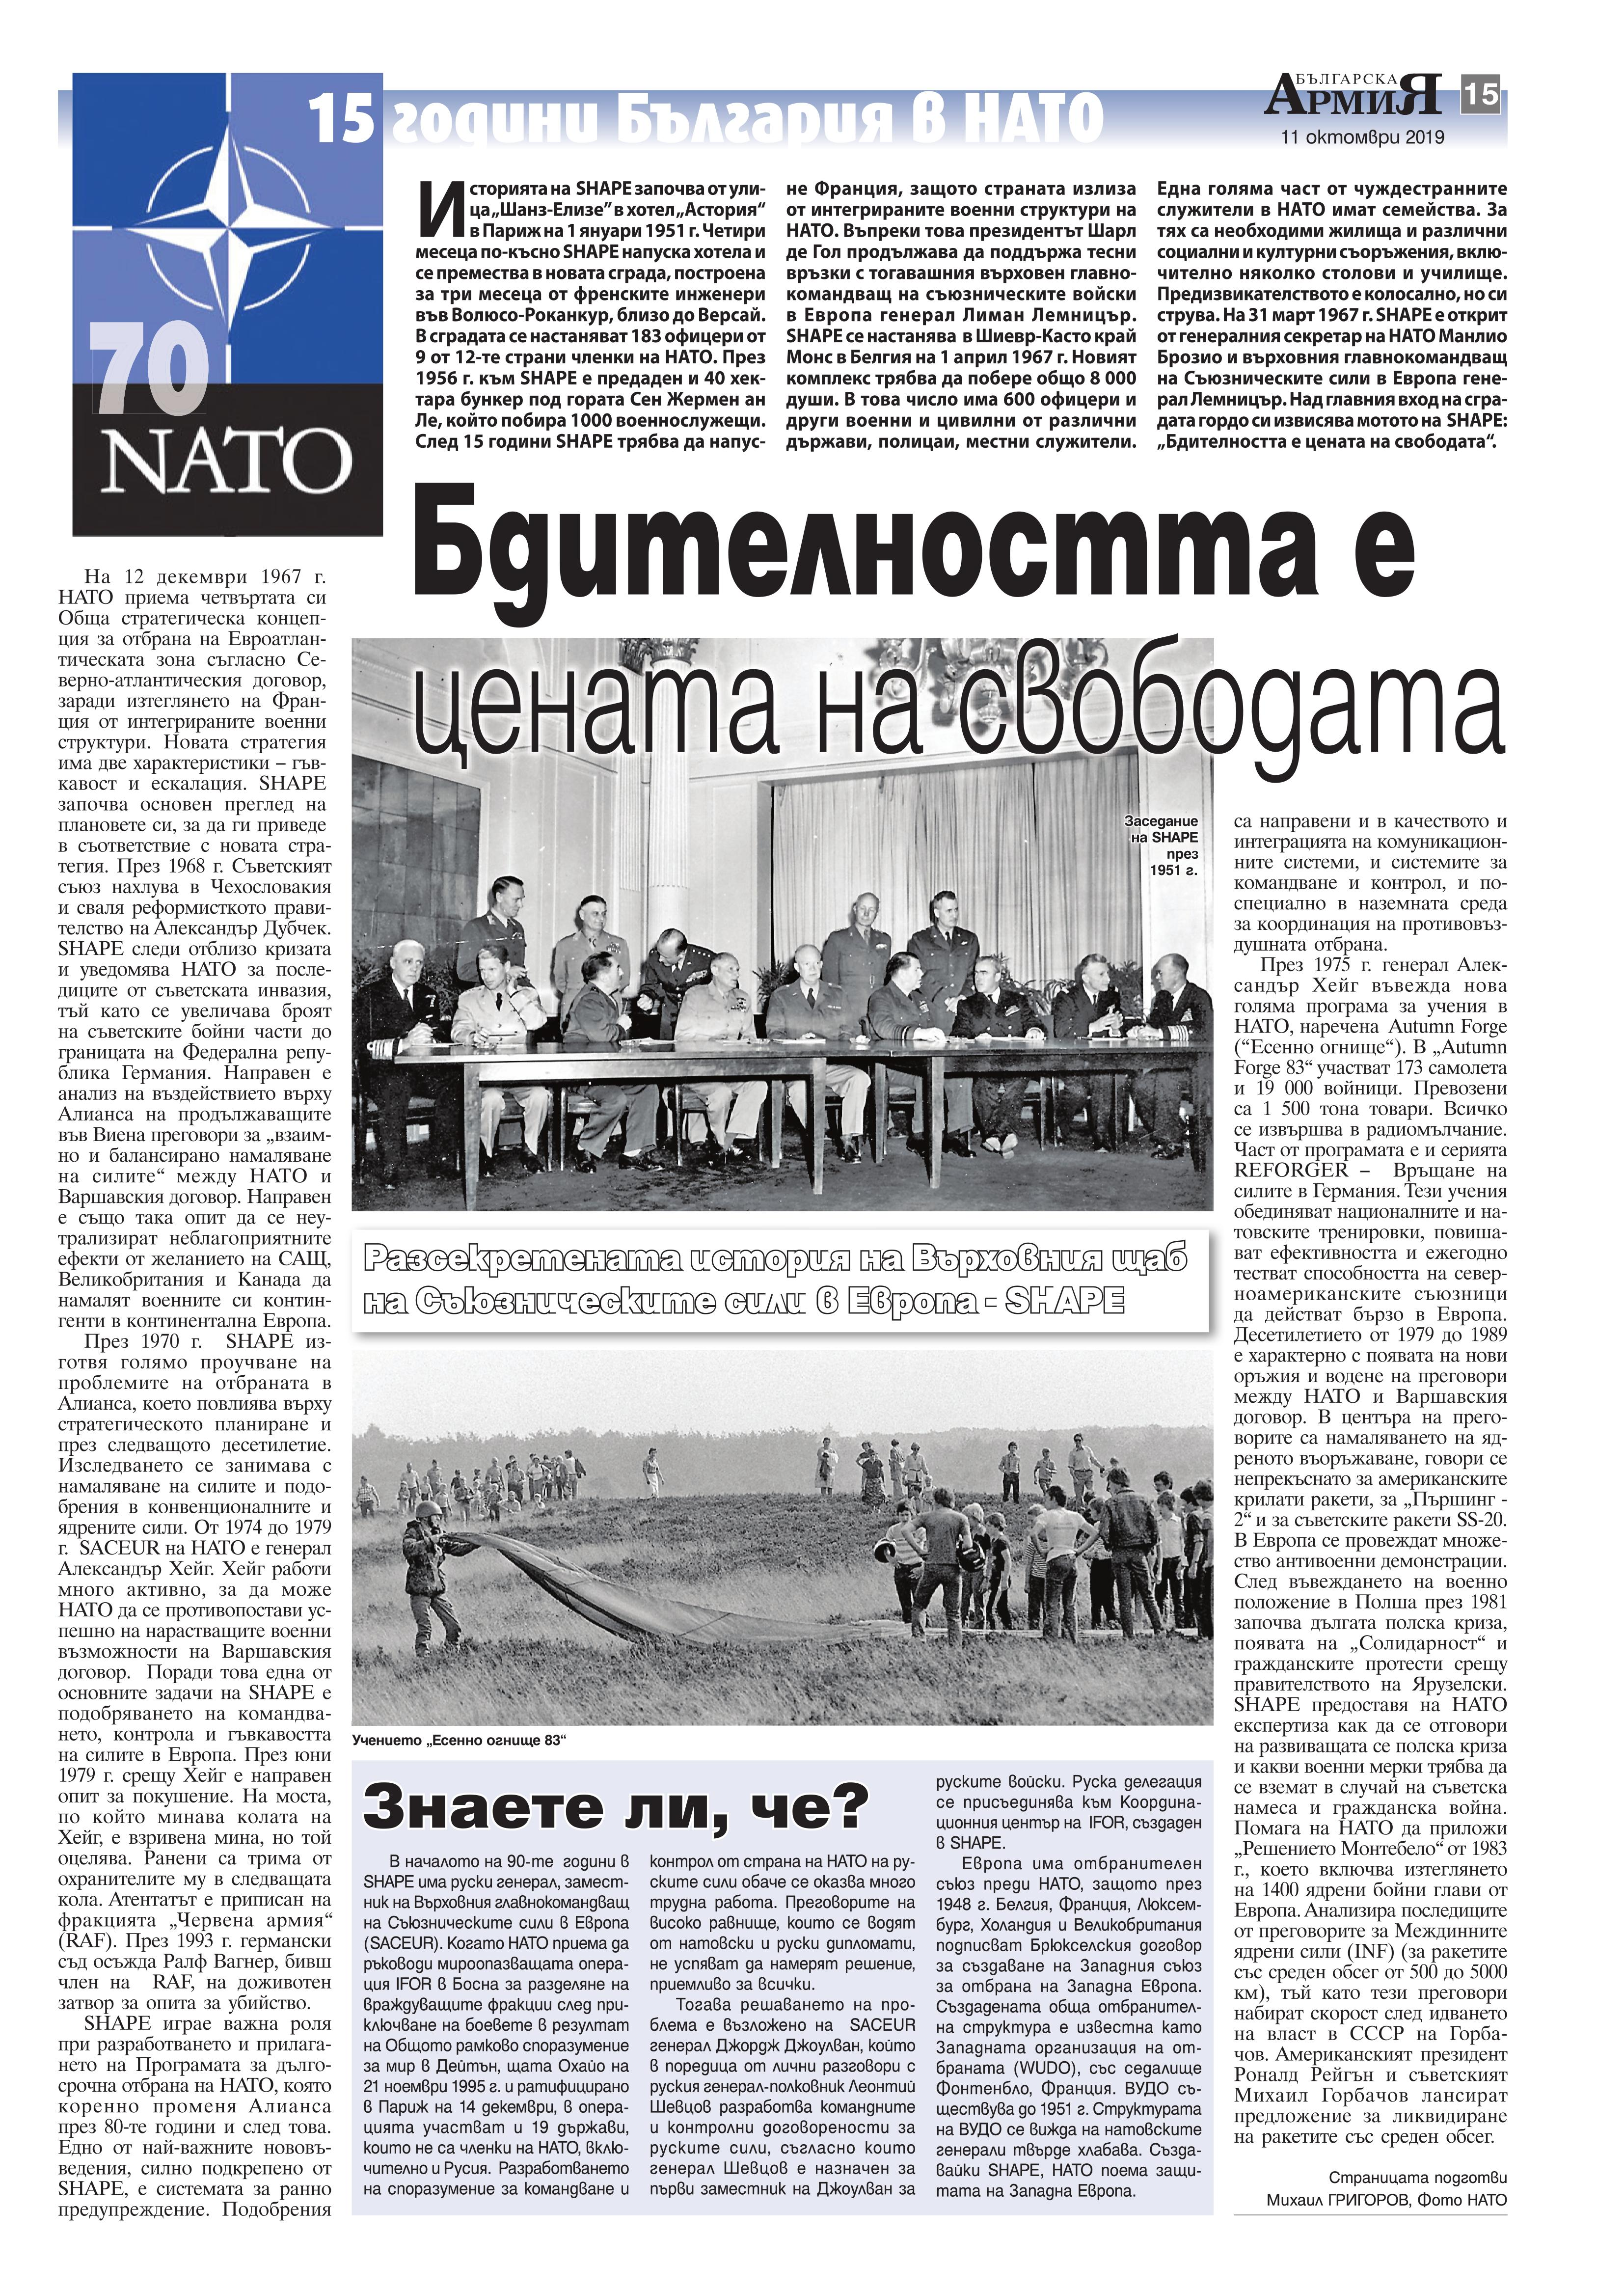 https://armymedia.bg/wp-content/uploads/2015/06/15.page1_-111.jpg